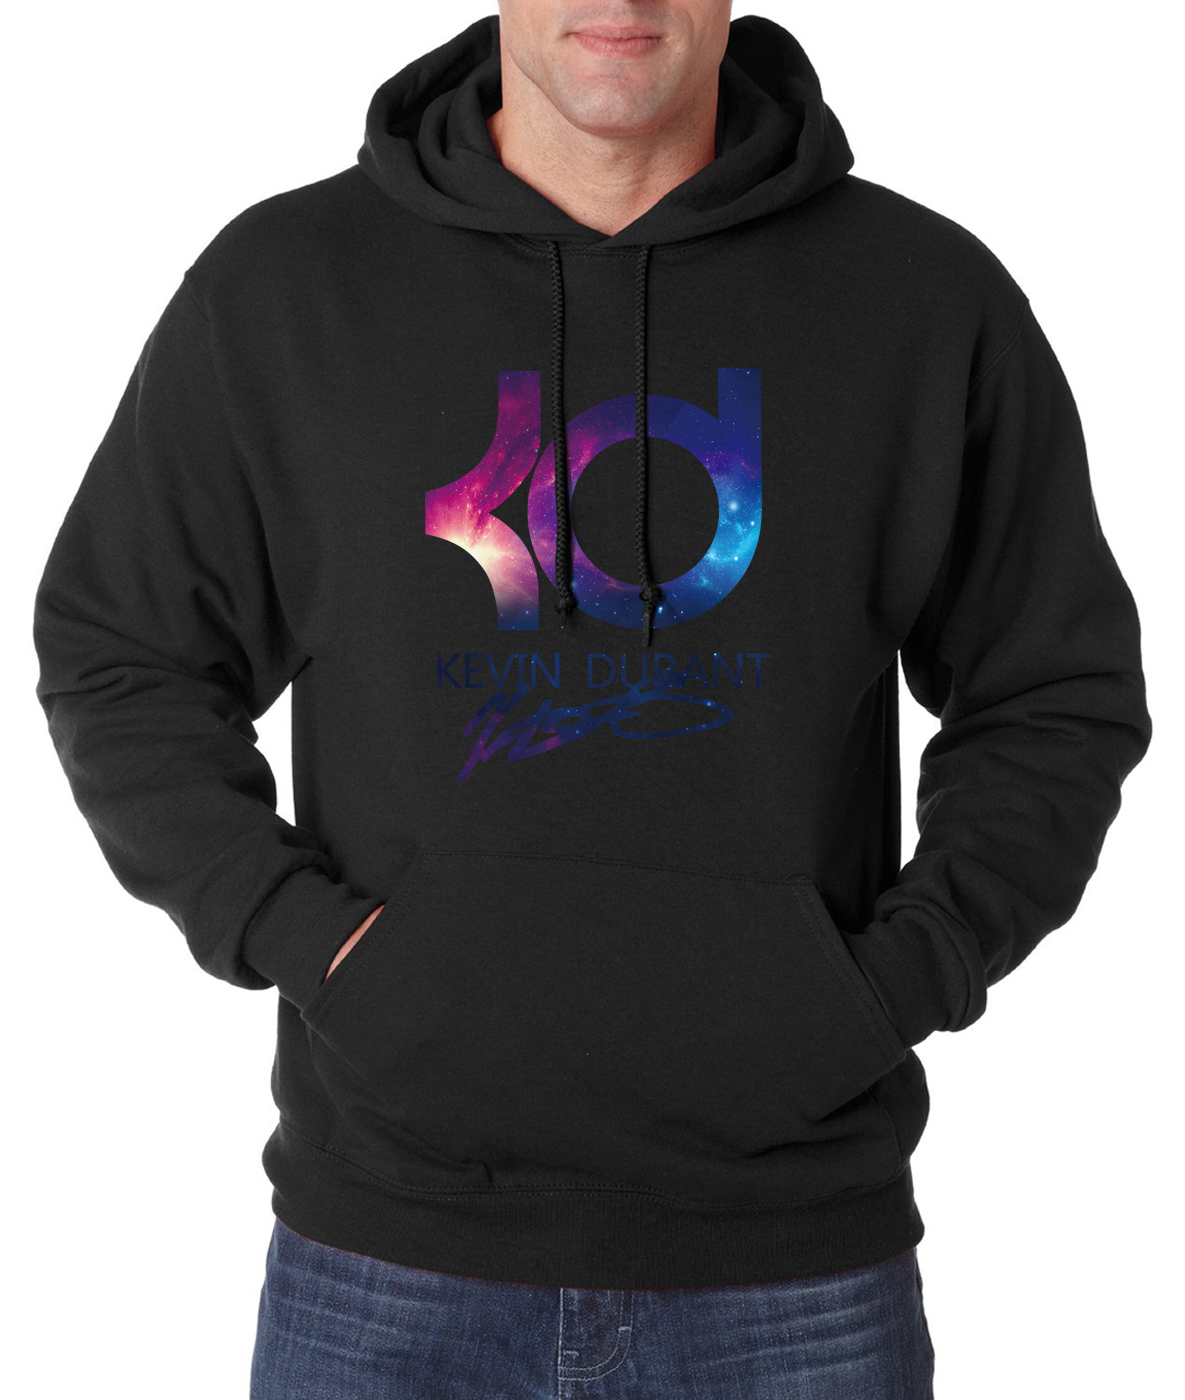 brand clothing Kevin Durant KD fashion hooded men autumn winter new men sweatshirts 2016 fleece KD hoodies men sudadera hombre(China (Mainland))